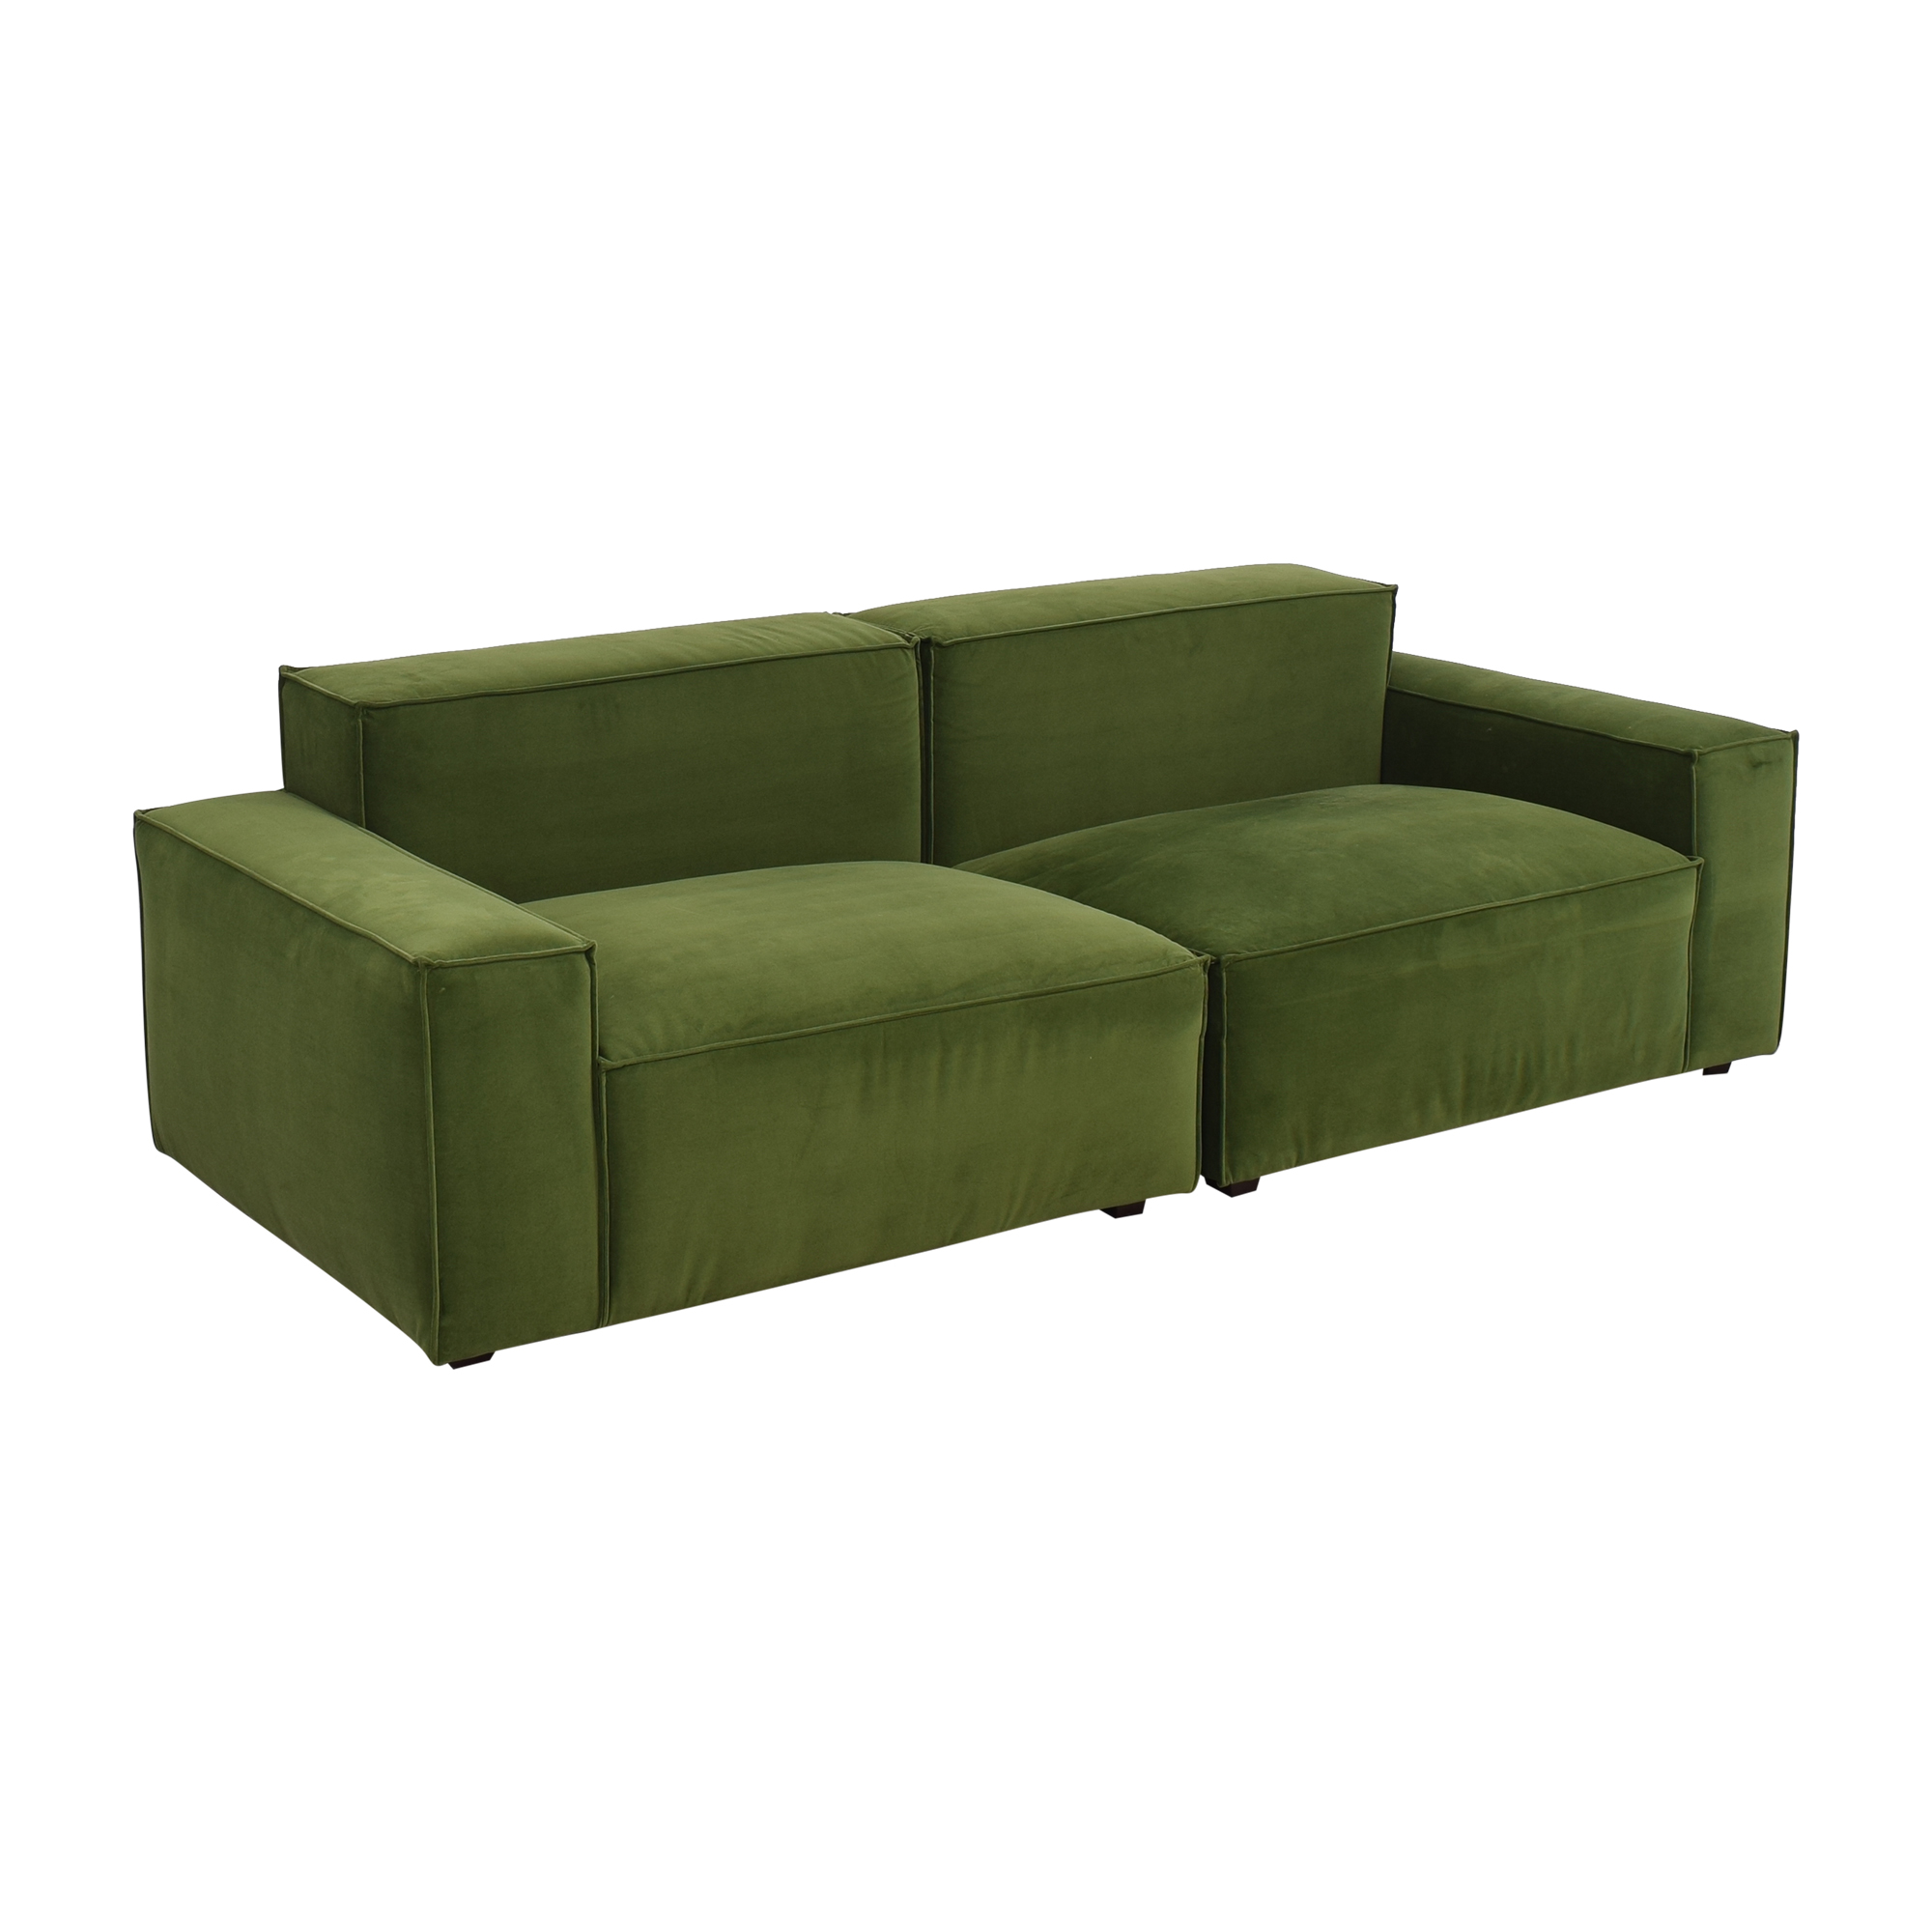 A.R.T. Furniture A.R.T. Raelyn Olafur Two Piece Modular Sectional Sofa on sale